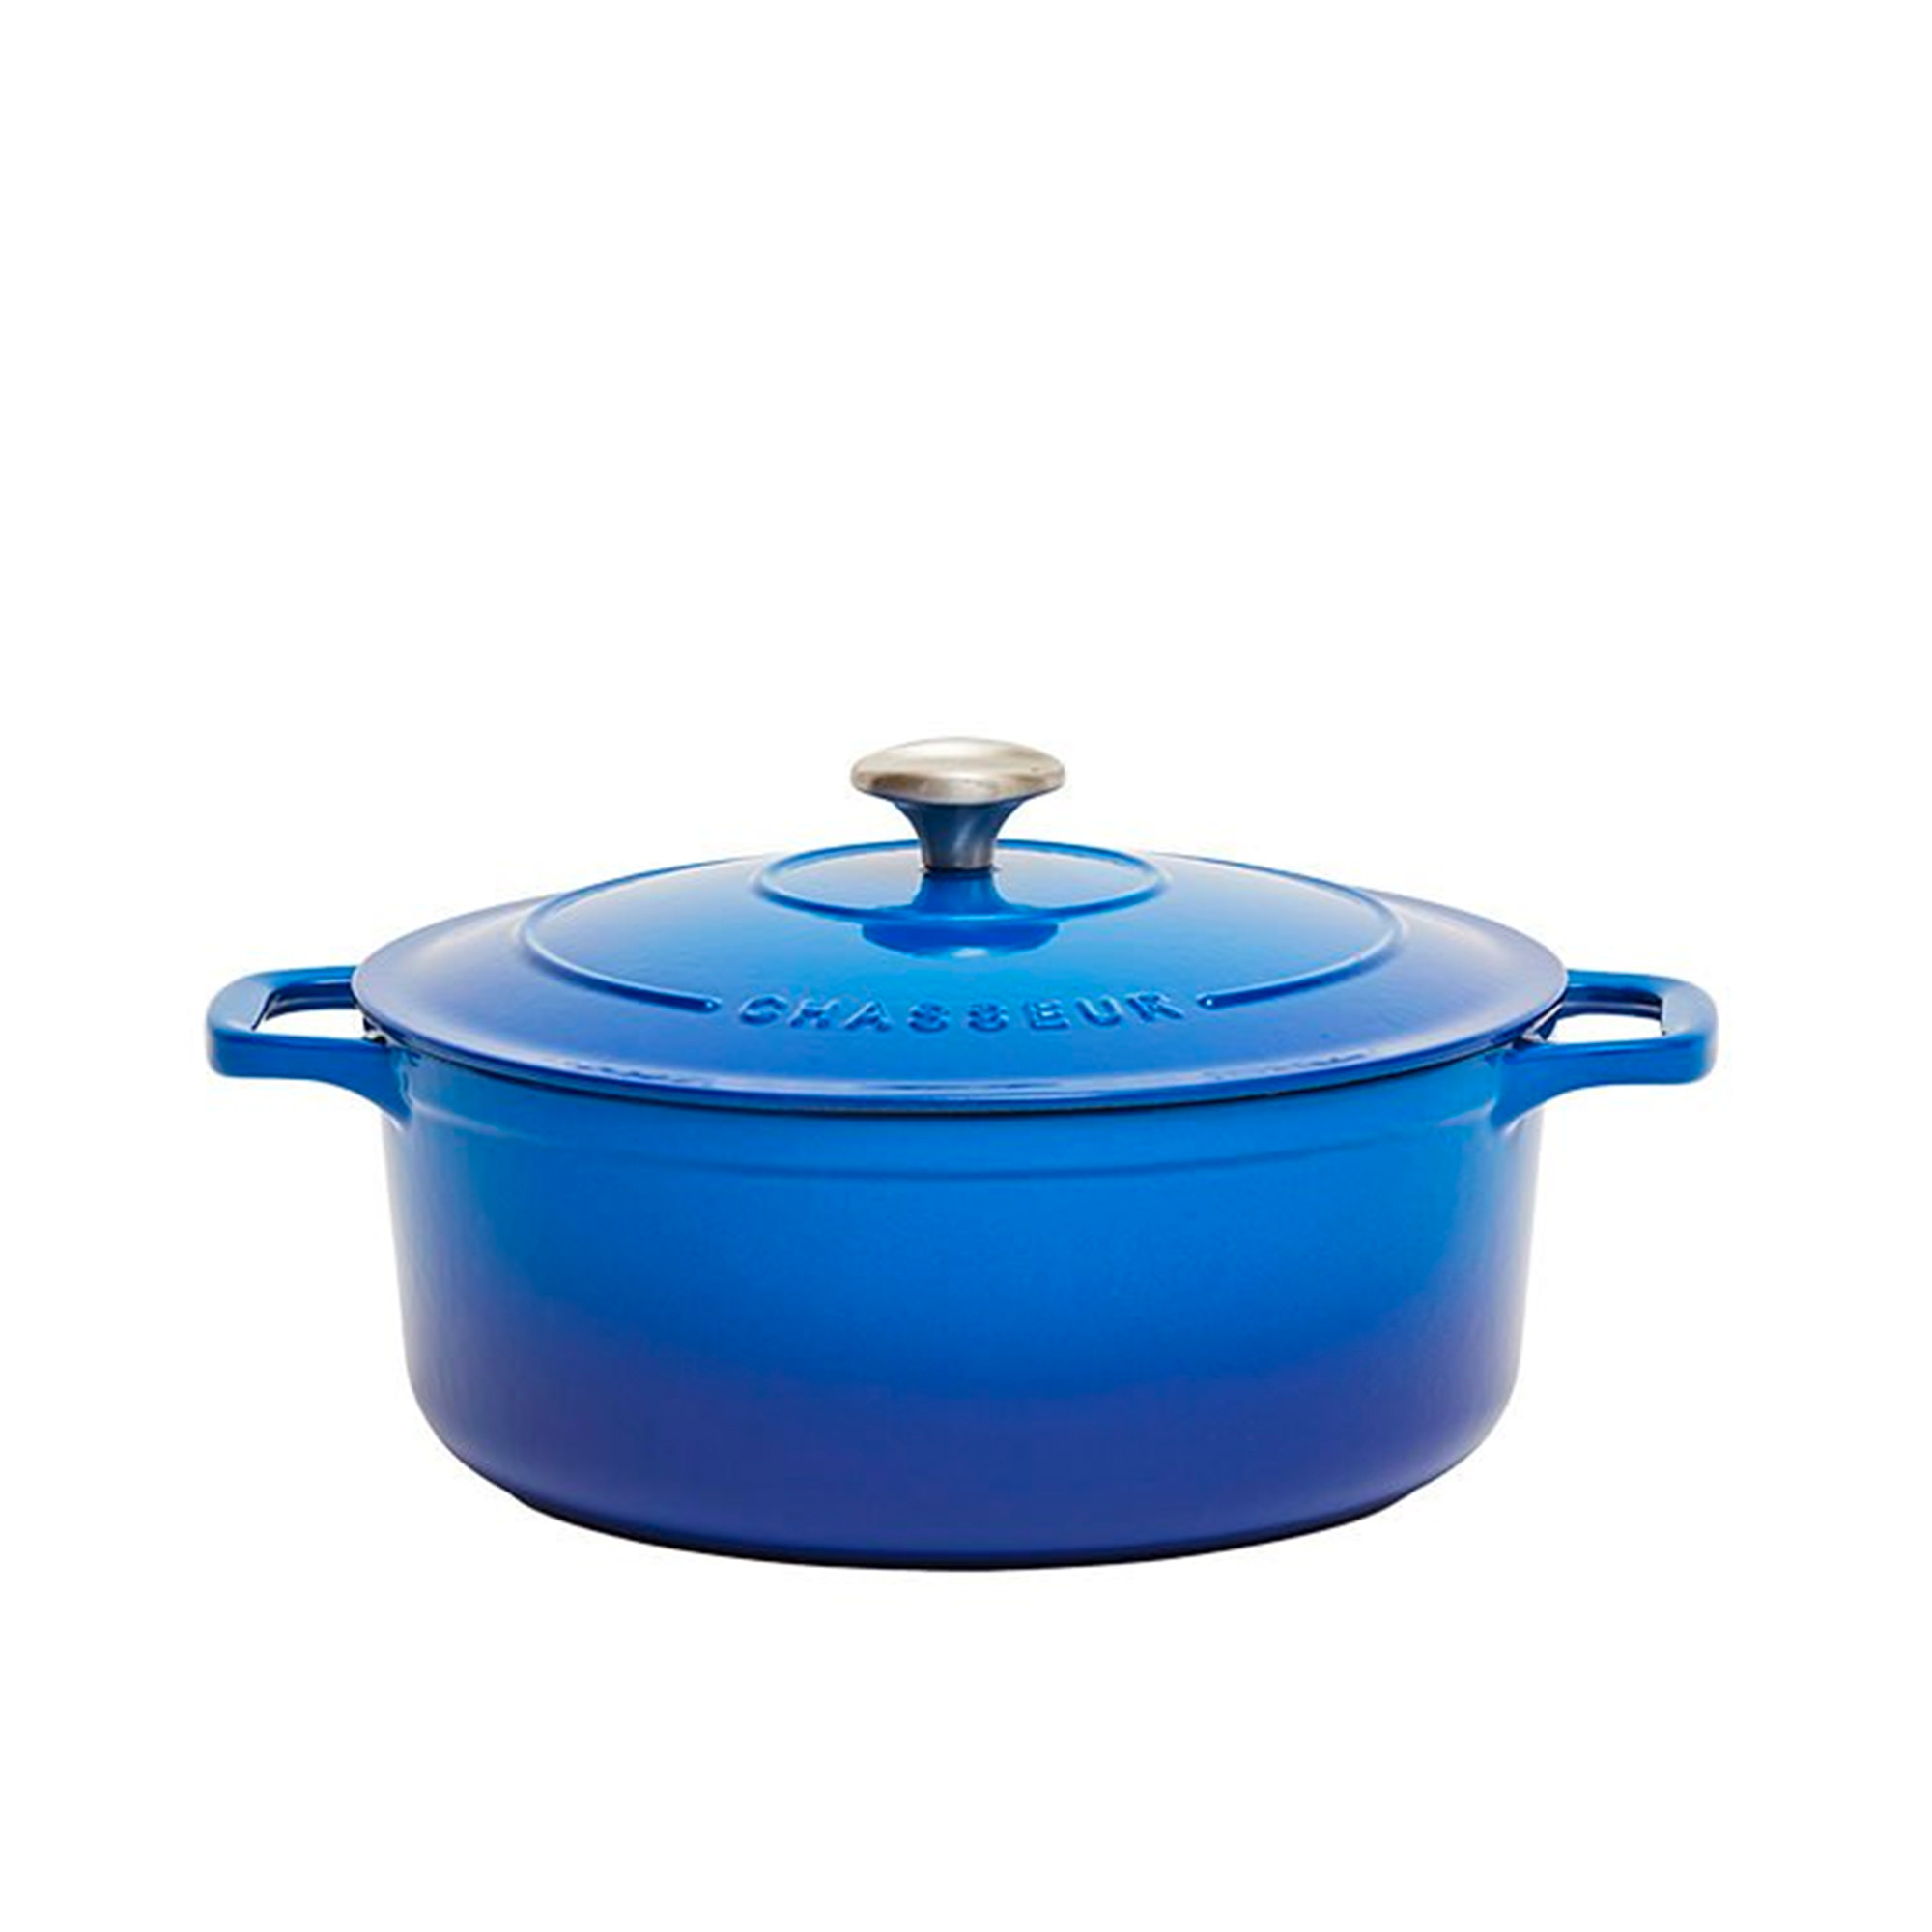 Chasseur Round French Oven 24cm - 4L Imperial Blue